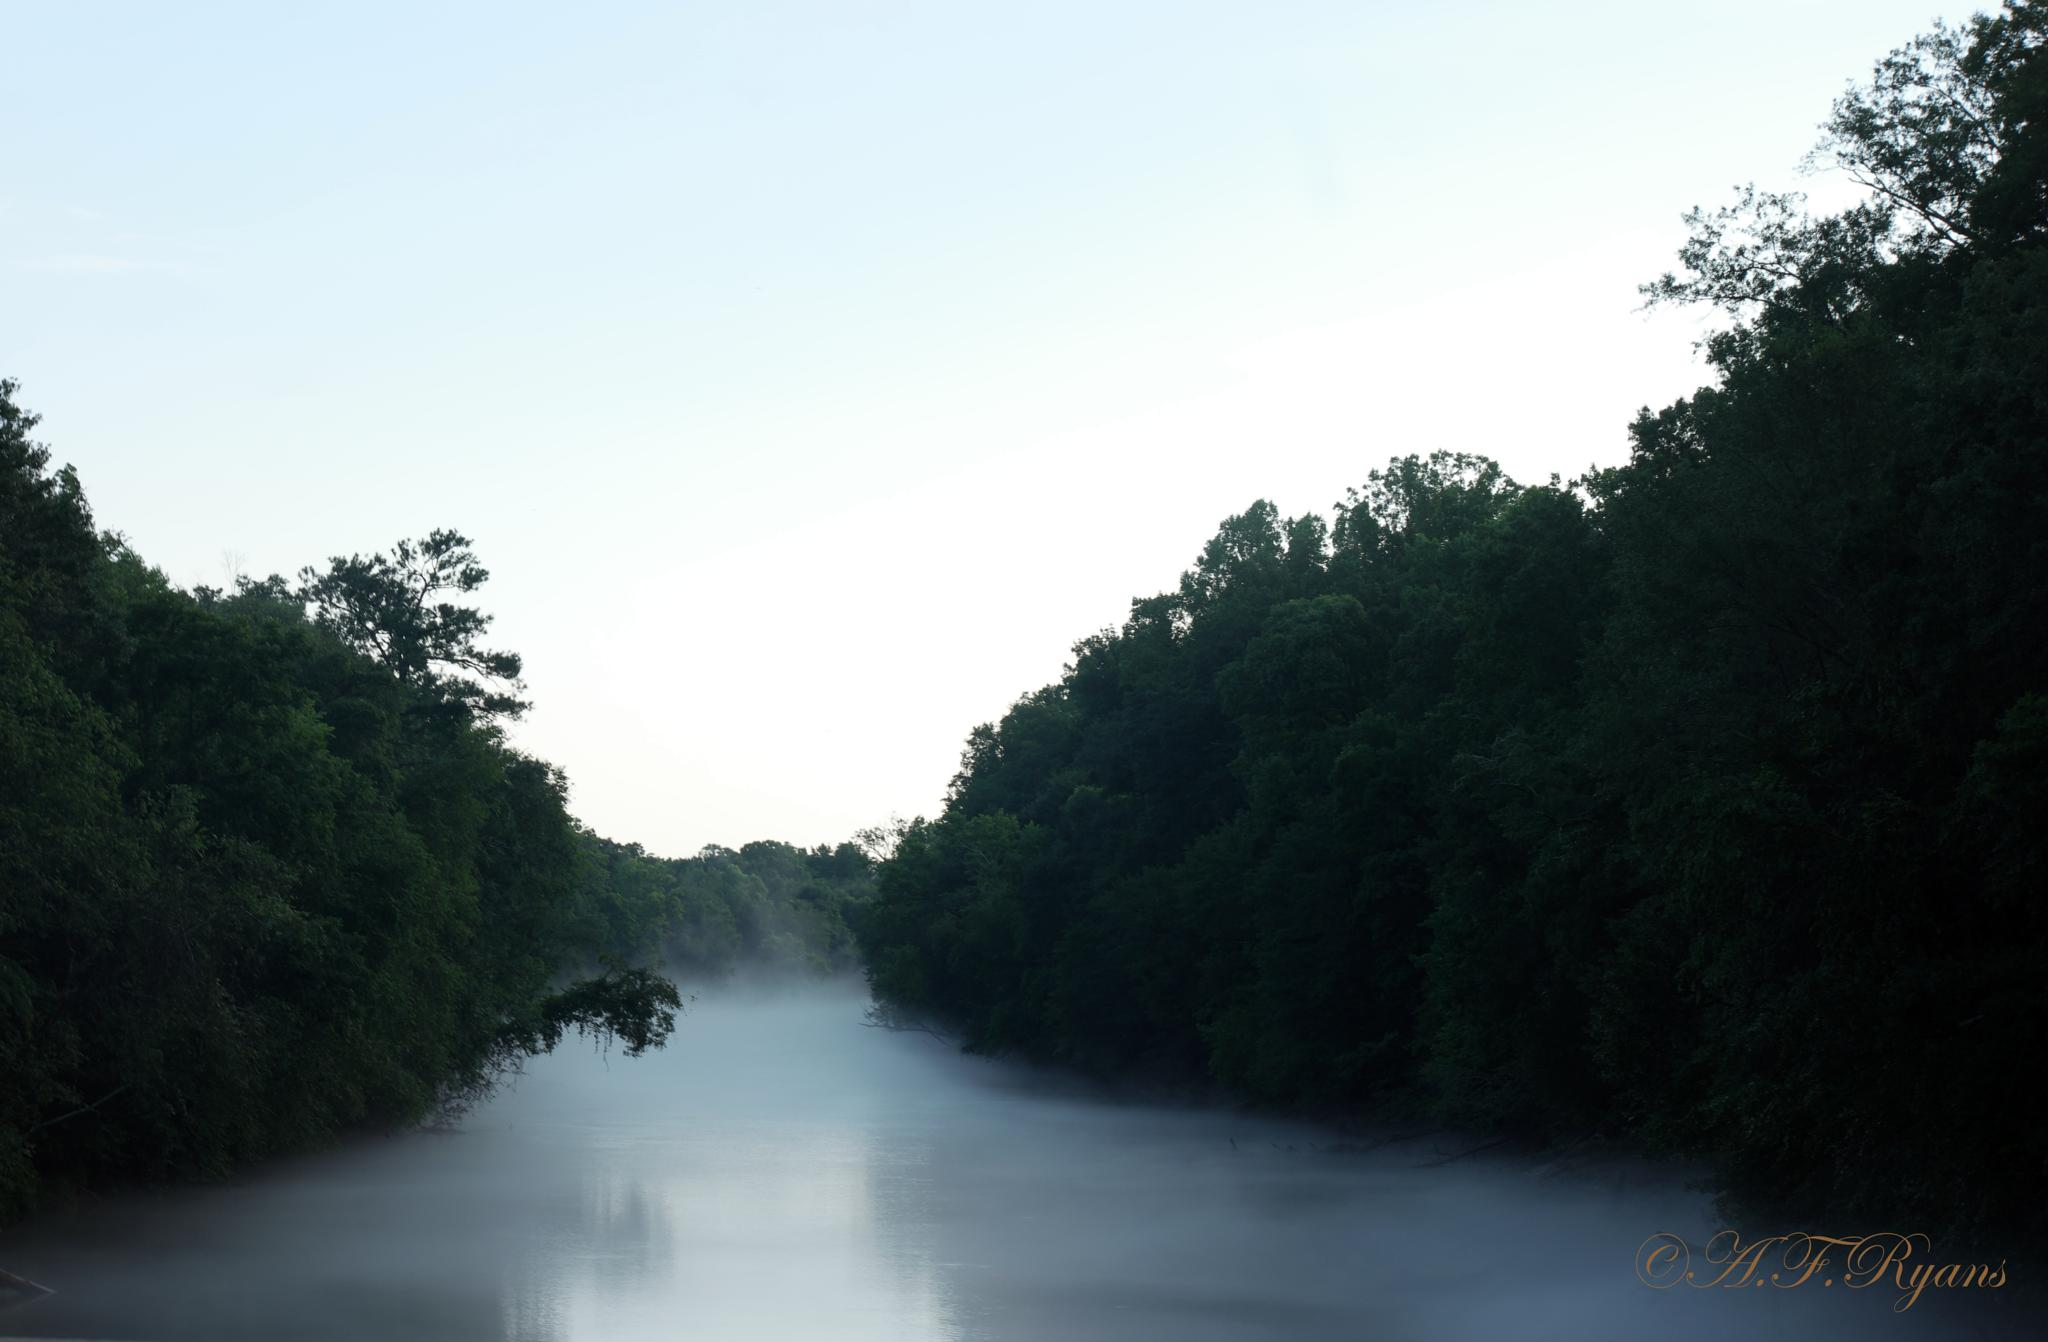 Chattahoochee River in the Morning by afryans